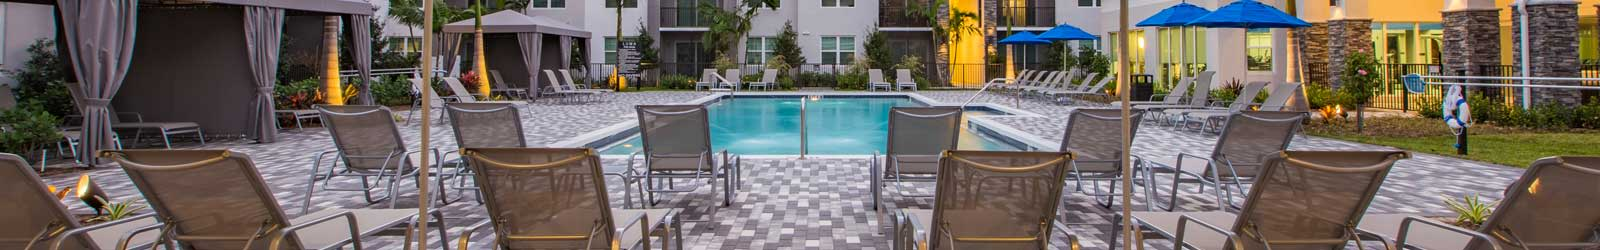 1 2 3 bedroom apartments in west palm beach fl photo - 2 bedroom suites in west palm beach fl ...